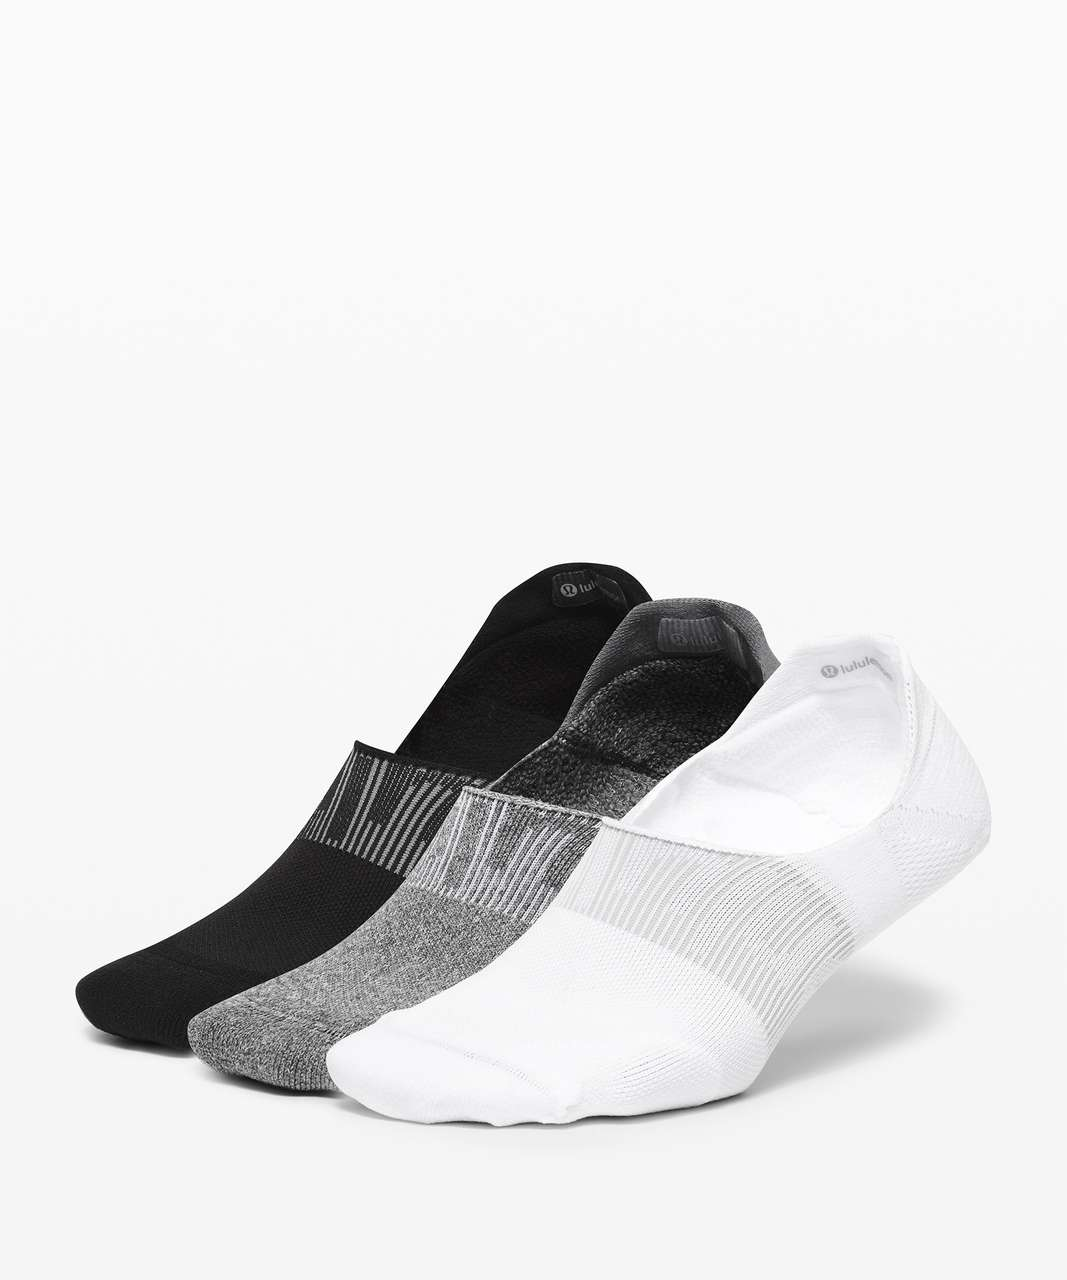 Lululemon Power Stride No-Show Sock with Active Grip *3 Pack - White / Heather Grey / Black